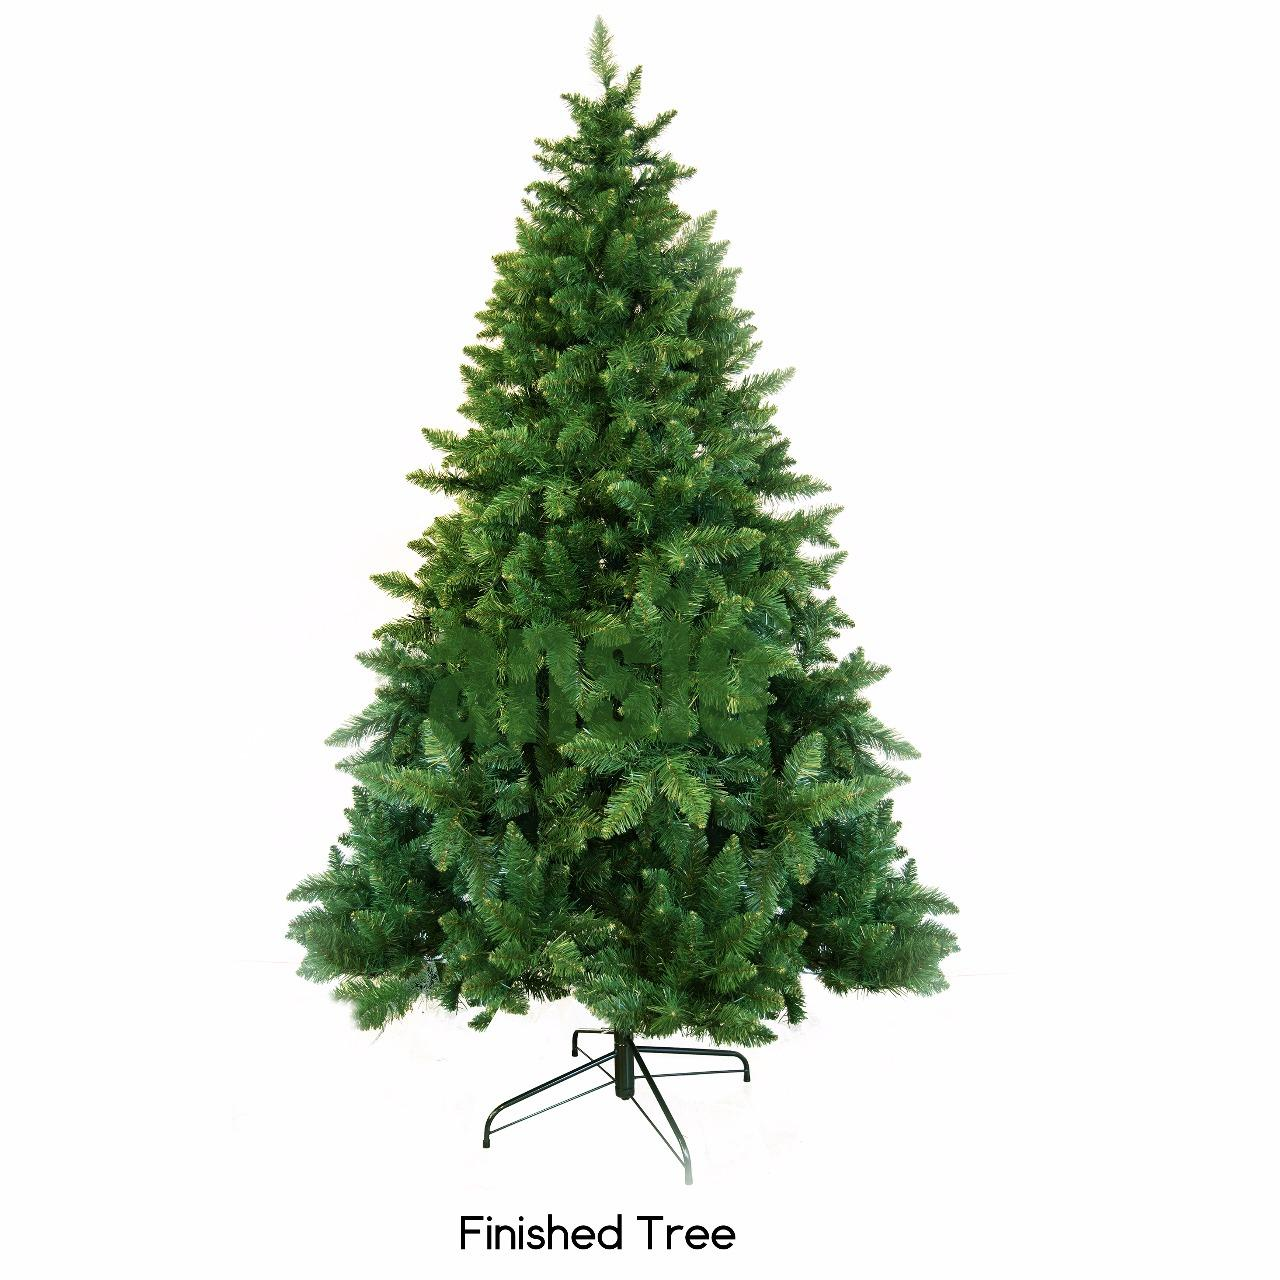 Artificial Christmas Trees Amazon Uk: Pre Lit Christmas Trees 7ft / 2.1M Artificial Christmas